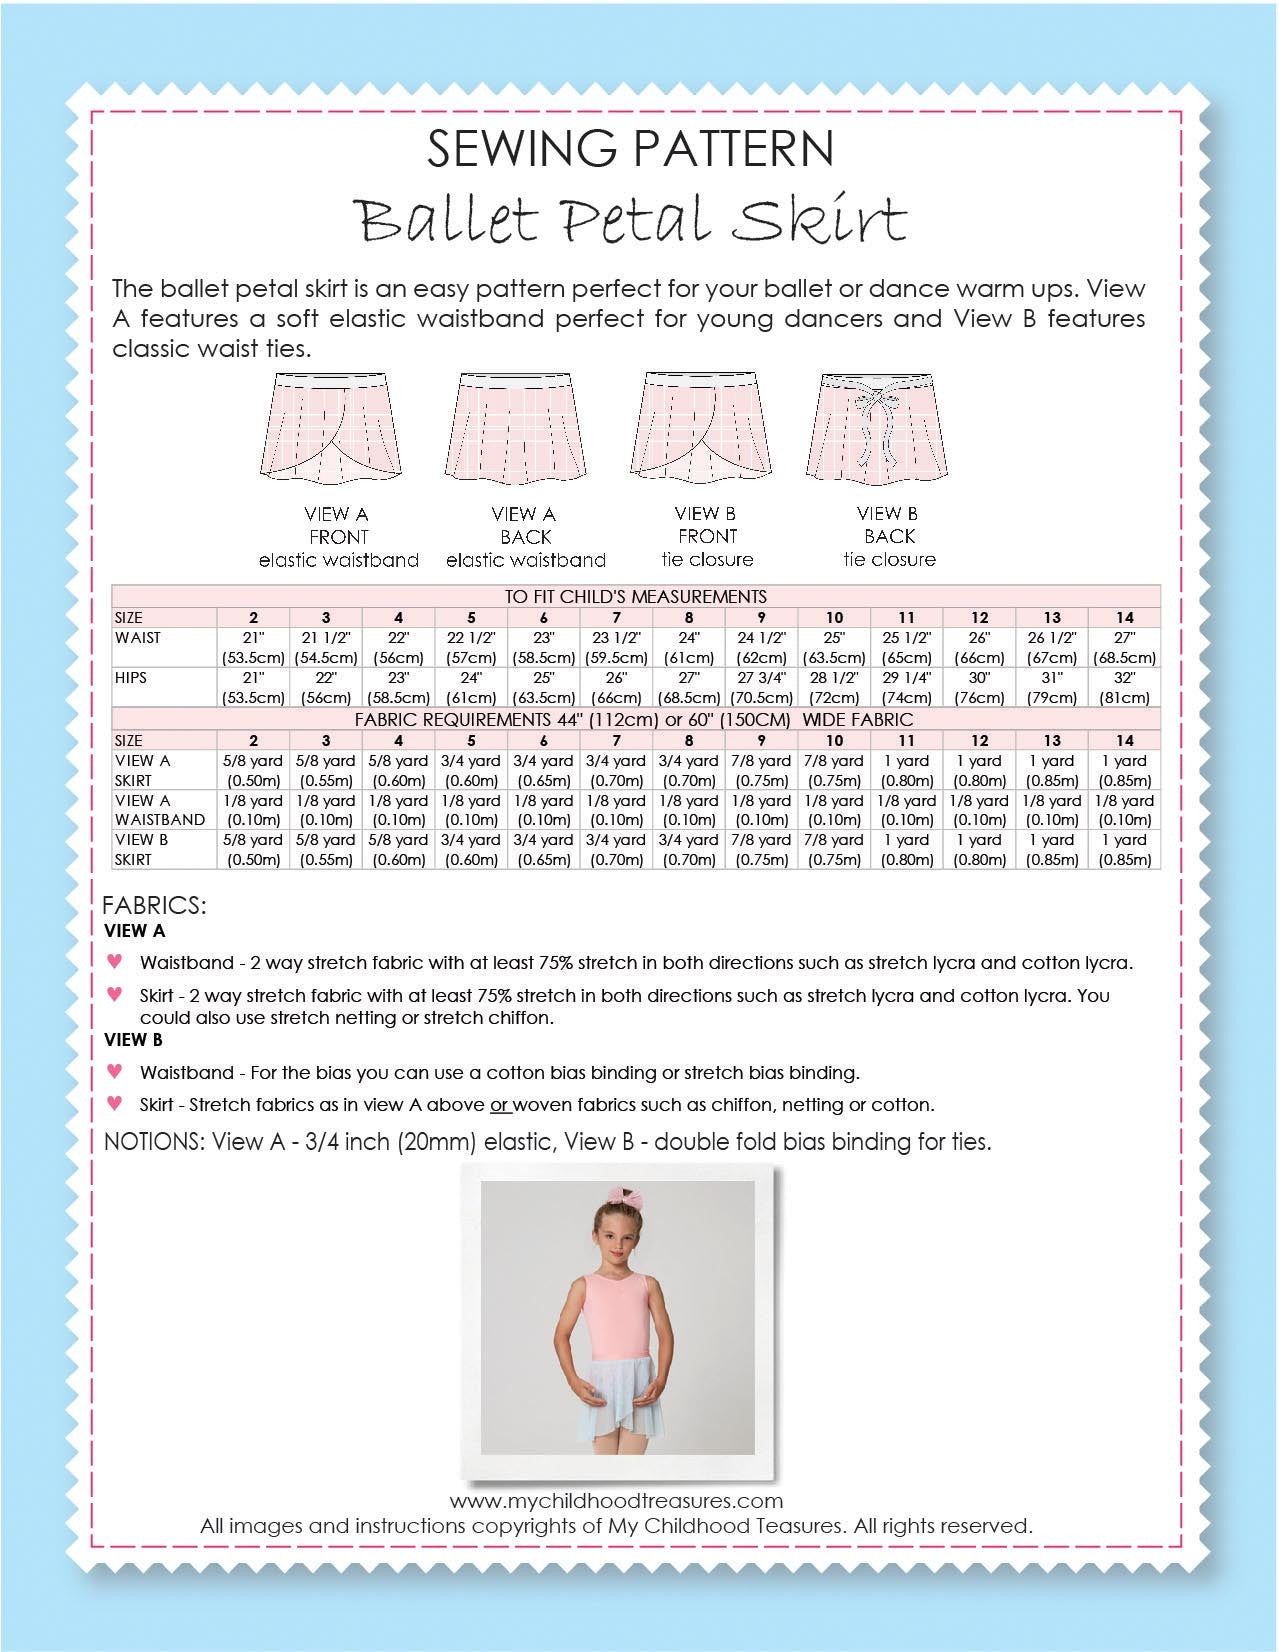 Girls Ballet Skirt Sewing Pattern – TREASURIE - My Childhood Treasures